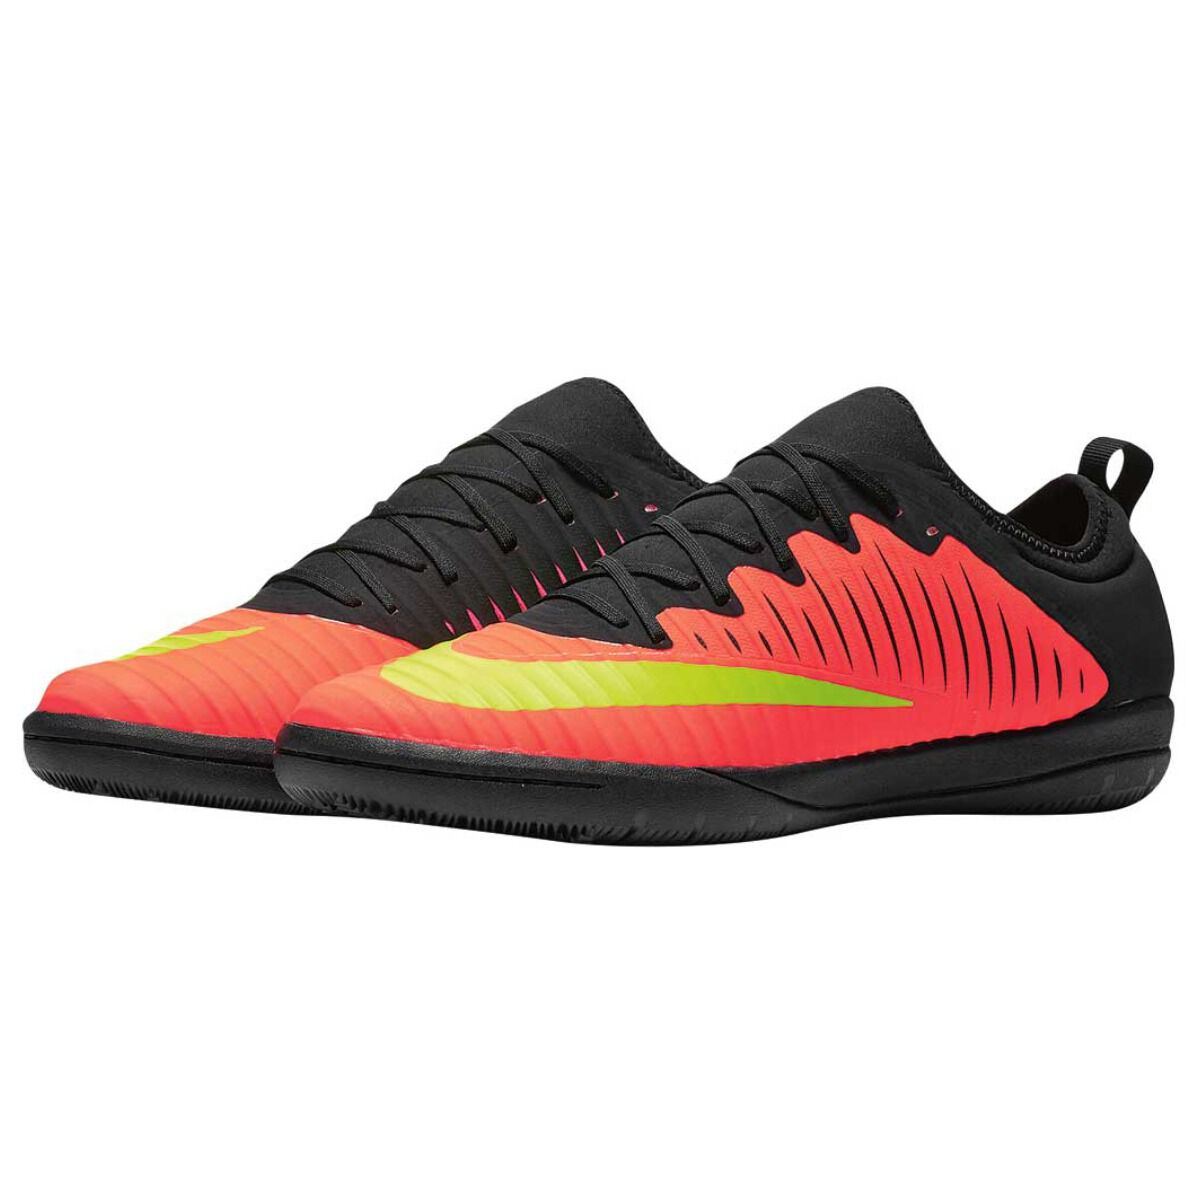 4a413f31eb7 ... promo code for nike mercurialx finale ii mens indoor soccer shoes  crimson volt us 8.5 adult